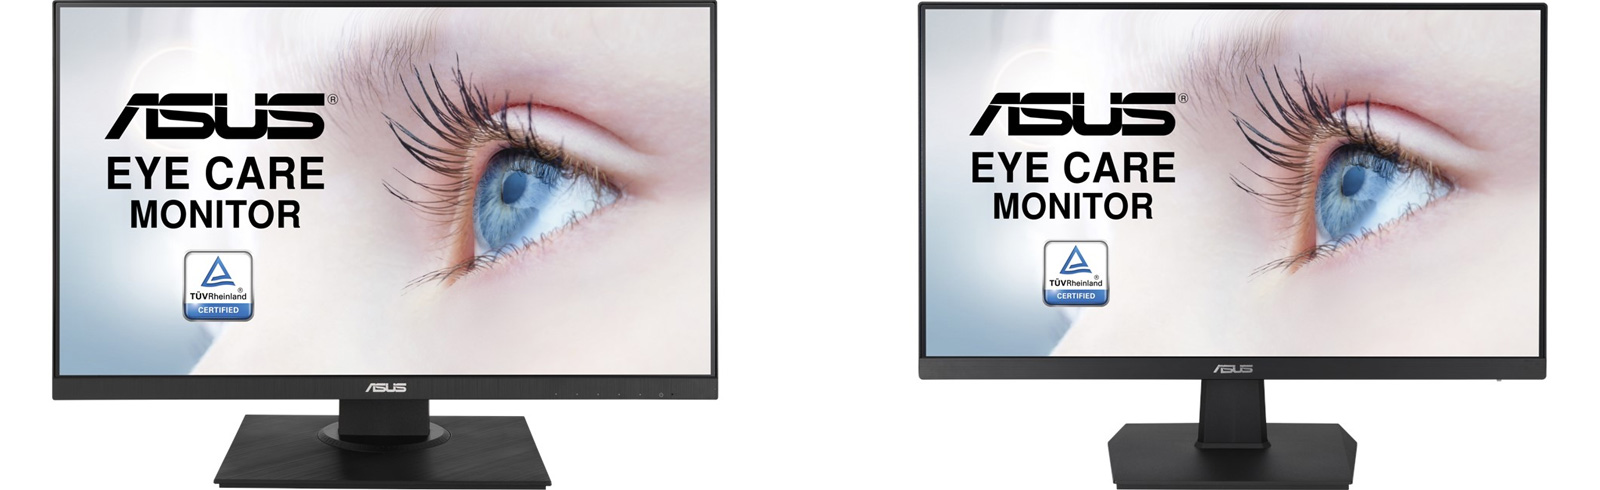 Asus launches a trio of new 75Hz Eye-Care monitors - VA24EHE, VA27EHE, VA24DQLB